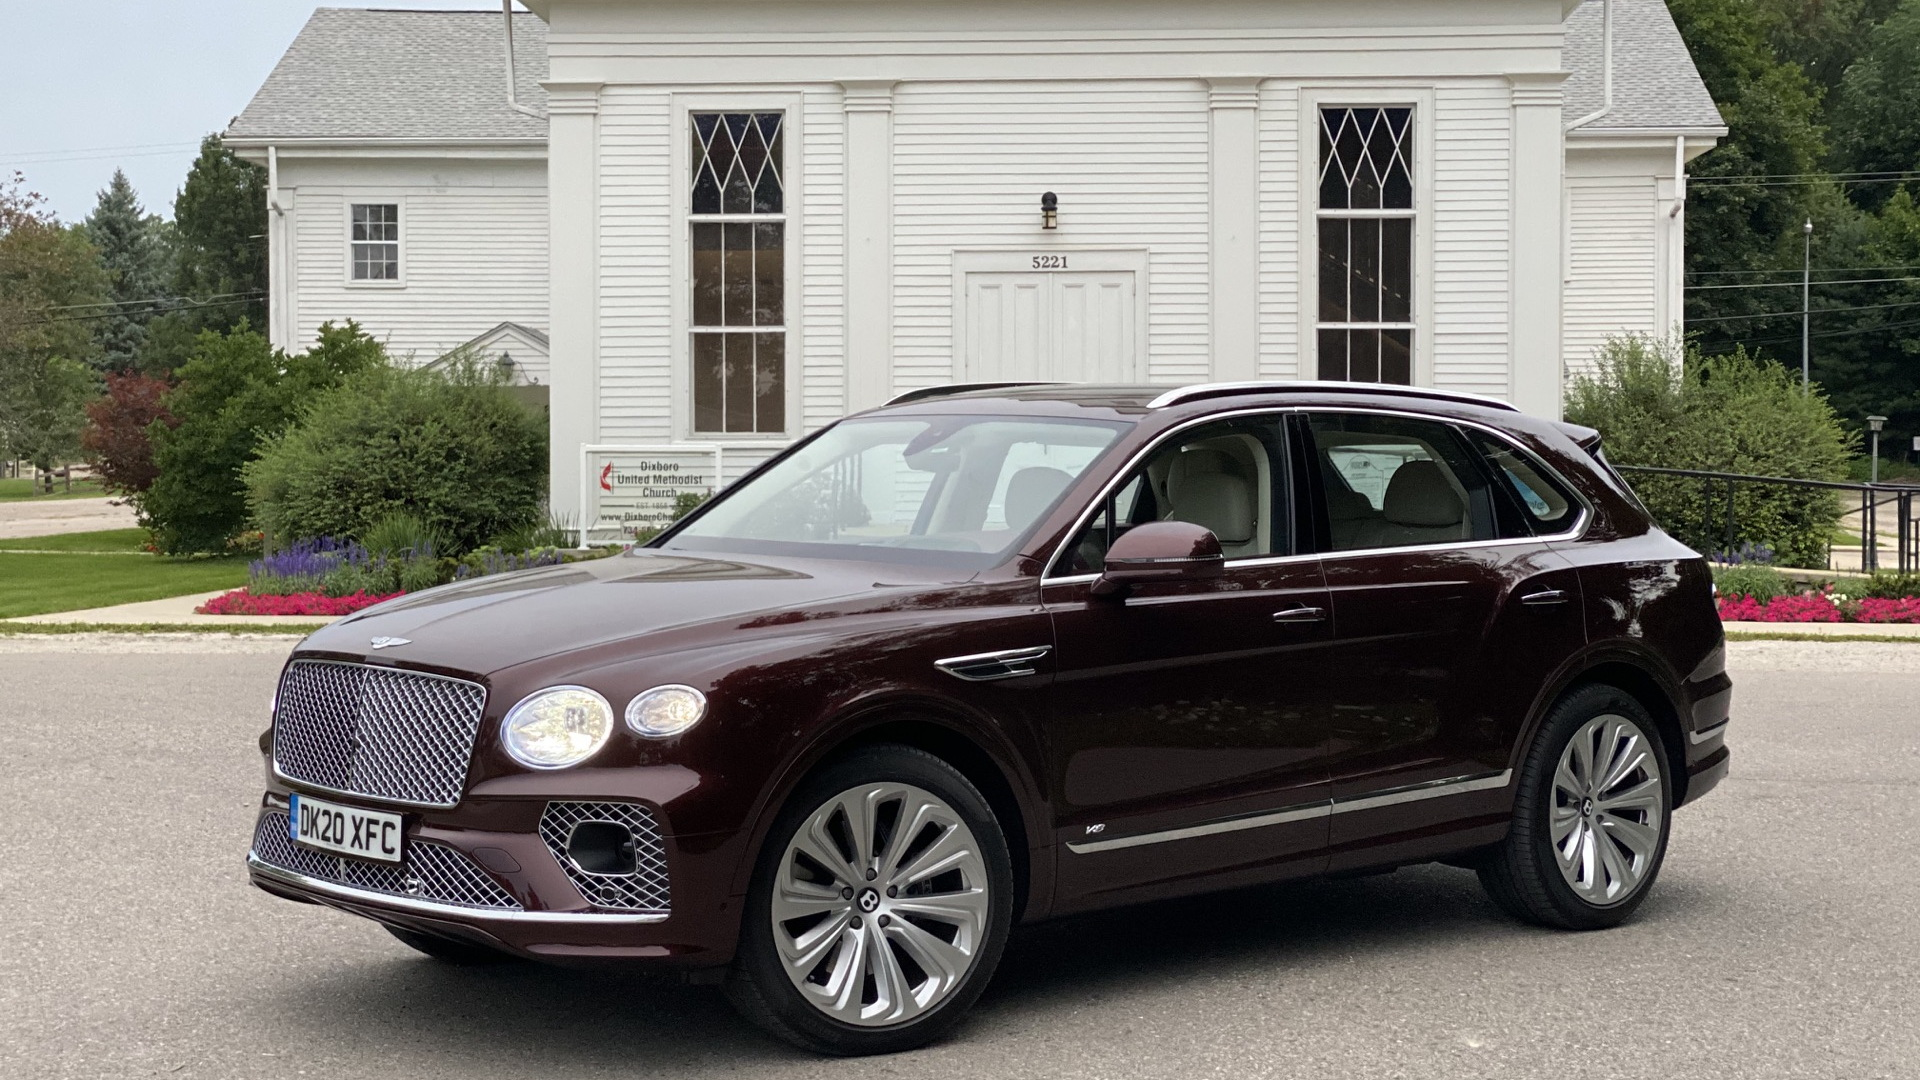 First Drive Review 2021 Bentley Bentayga Suv Adds It Up